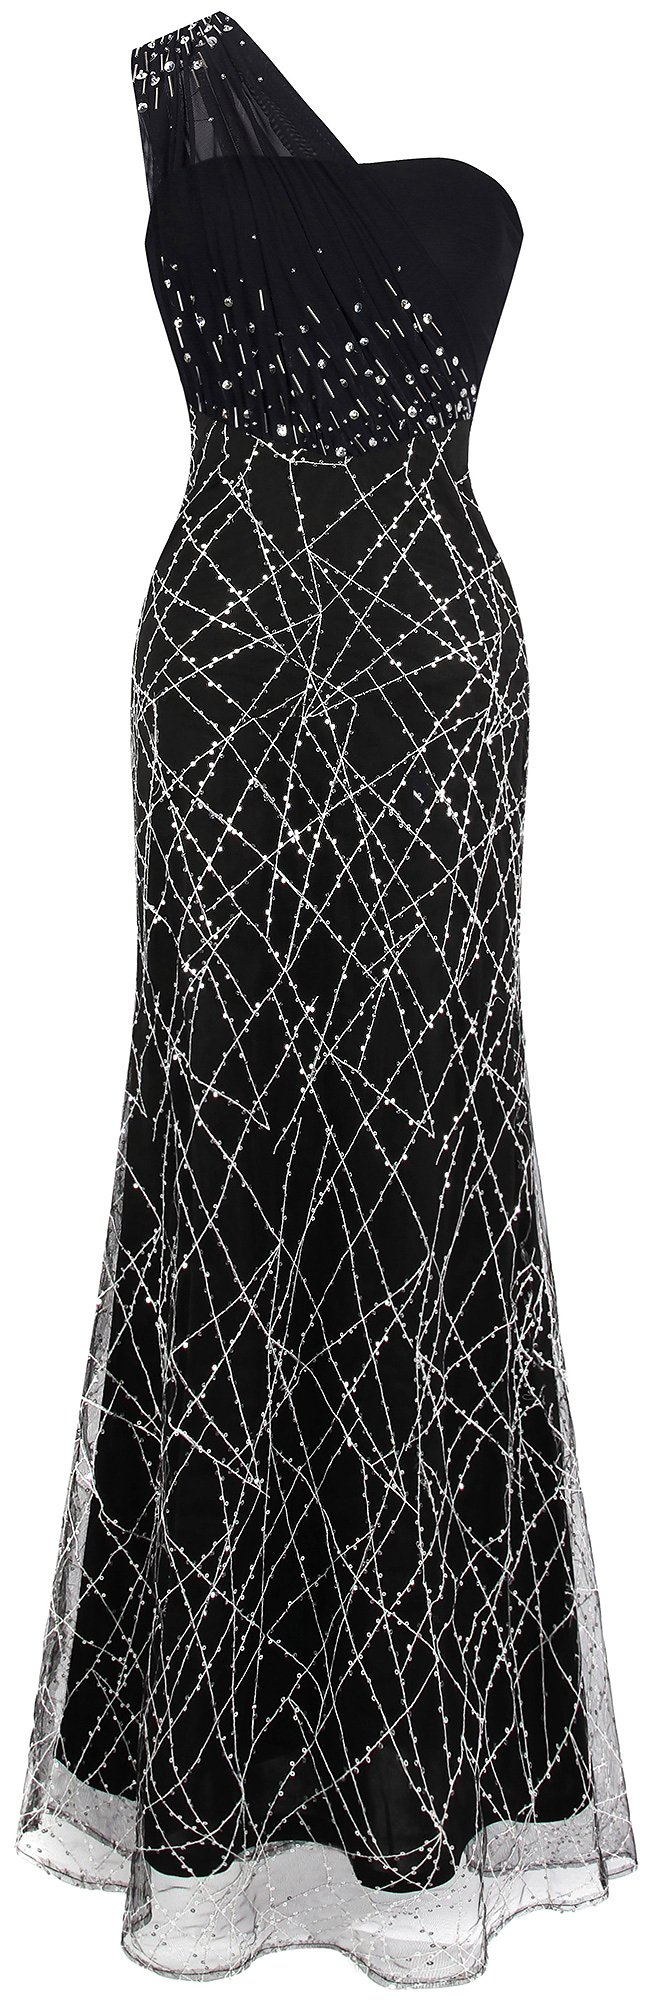 Angel-fashions Women's Ruched One Shoulder Beaded Long Black Evening Gown XXLarge